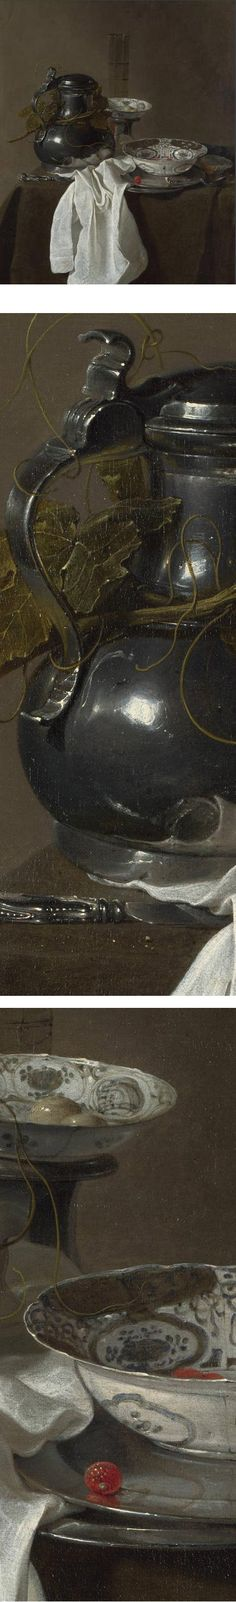 Still Life with a Pewter Flagon and Two Ming Bowls, Jan Jansz Treck. The bowls are an odd color because the artist used a type of smalt (cobalt glass) blue that was not light-fast. In the National Gallery, London.